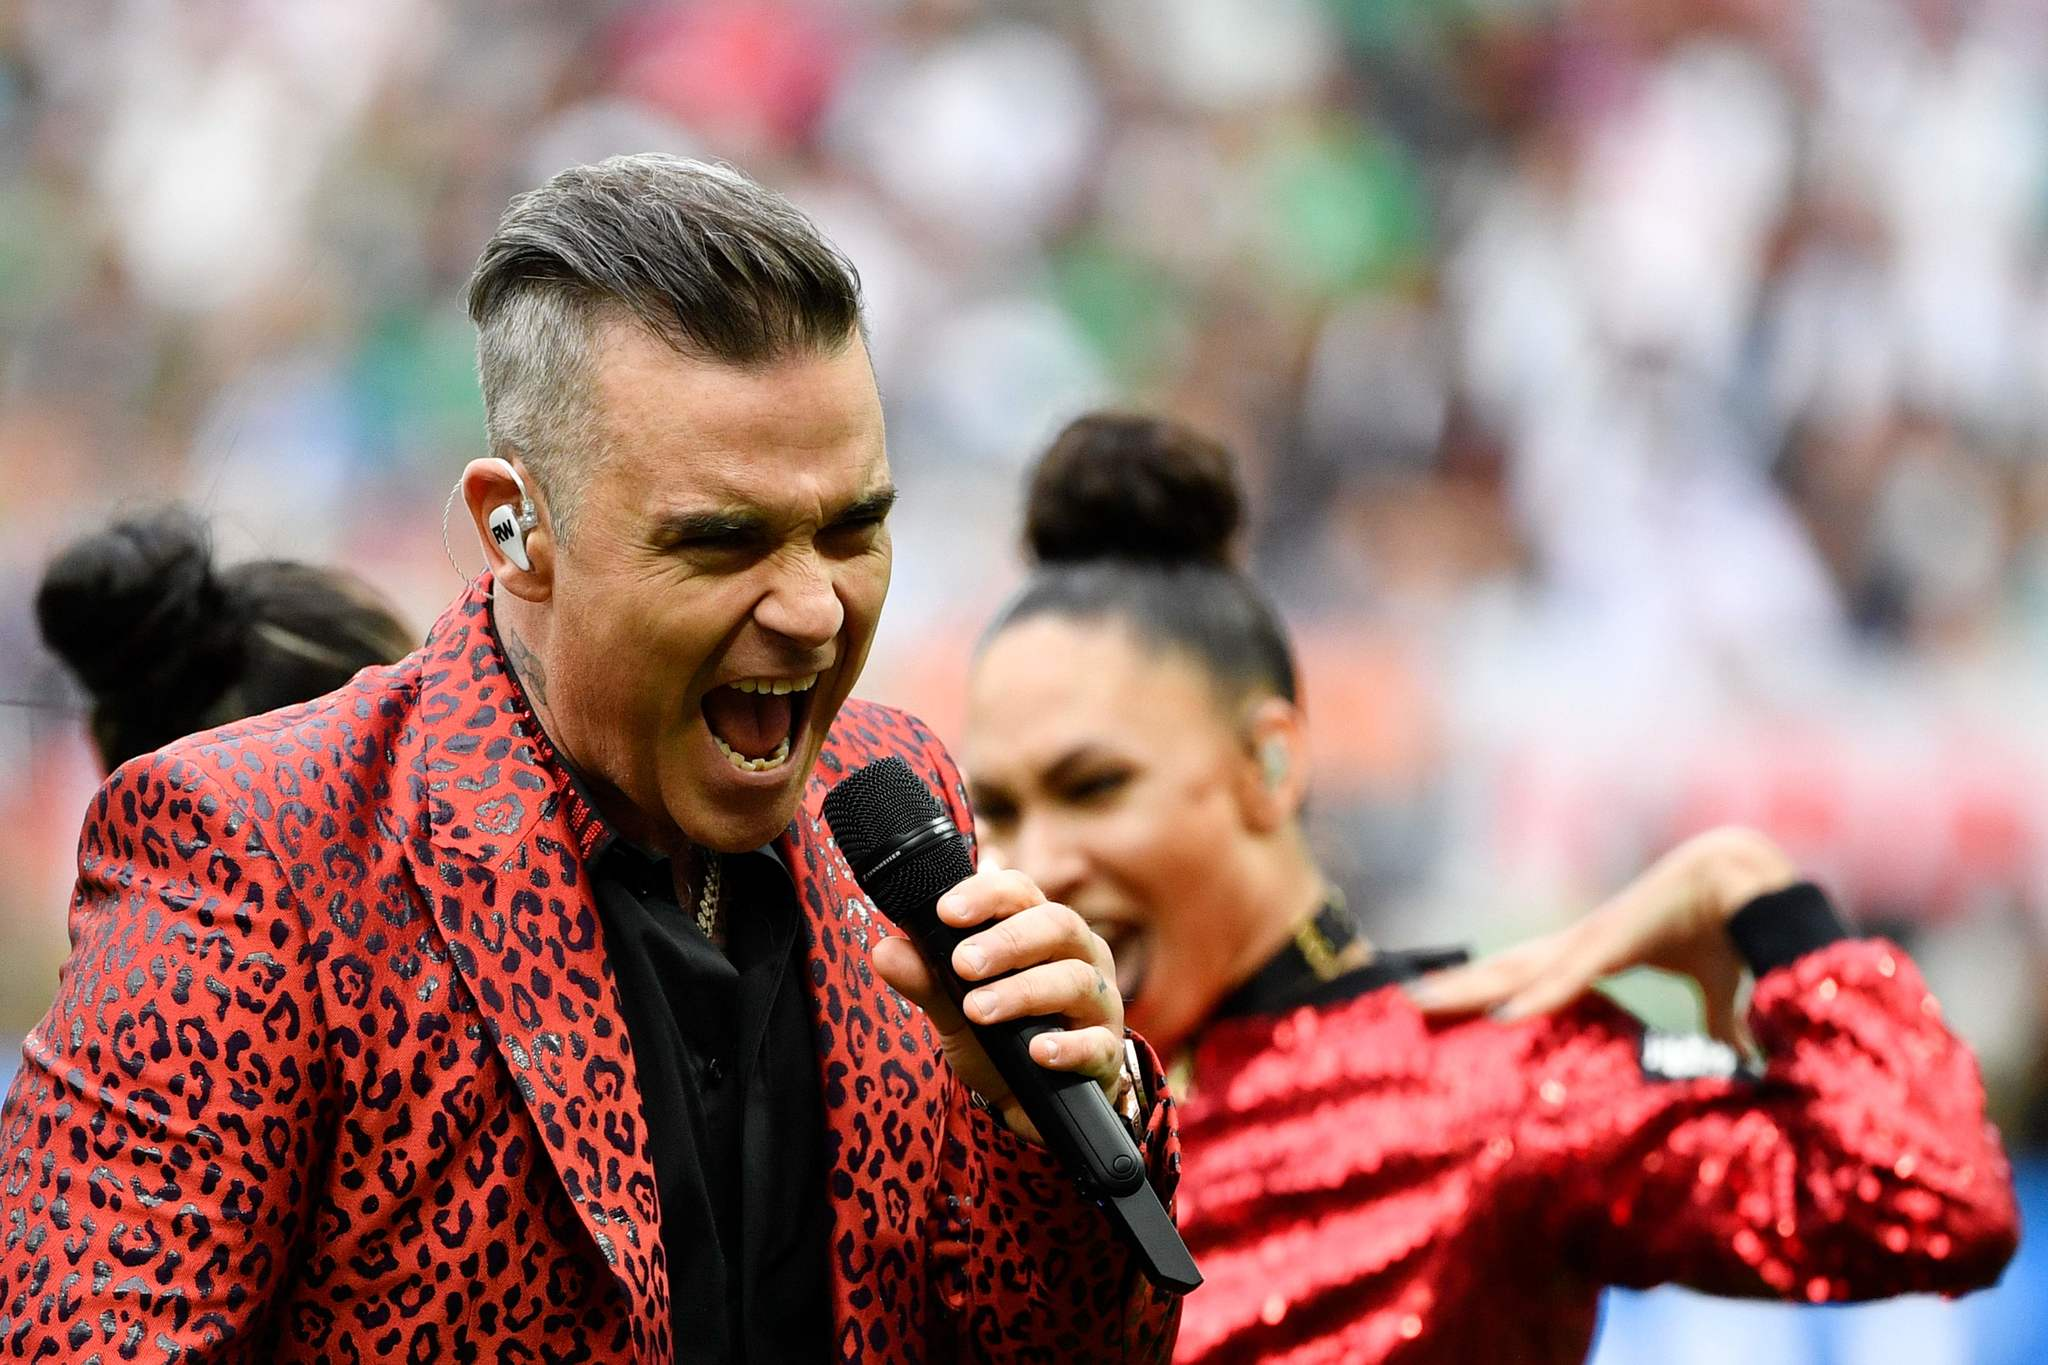 English singer <HIT>Robbie</HIT><HIT>Williams</HIT> performs during the opening ceremony before the Russia 2018 World Cup Group A football match between Russia and Saudi Arabia at the Luzhniki Stadium in Moscow on June 14, 2018. / AFP PHOTO / Alexander NEMENOV / RESTRICTED TO EDITORIAL USE - NO MOBILE PUSH ALERTS/DOWNLOADS